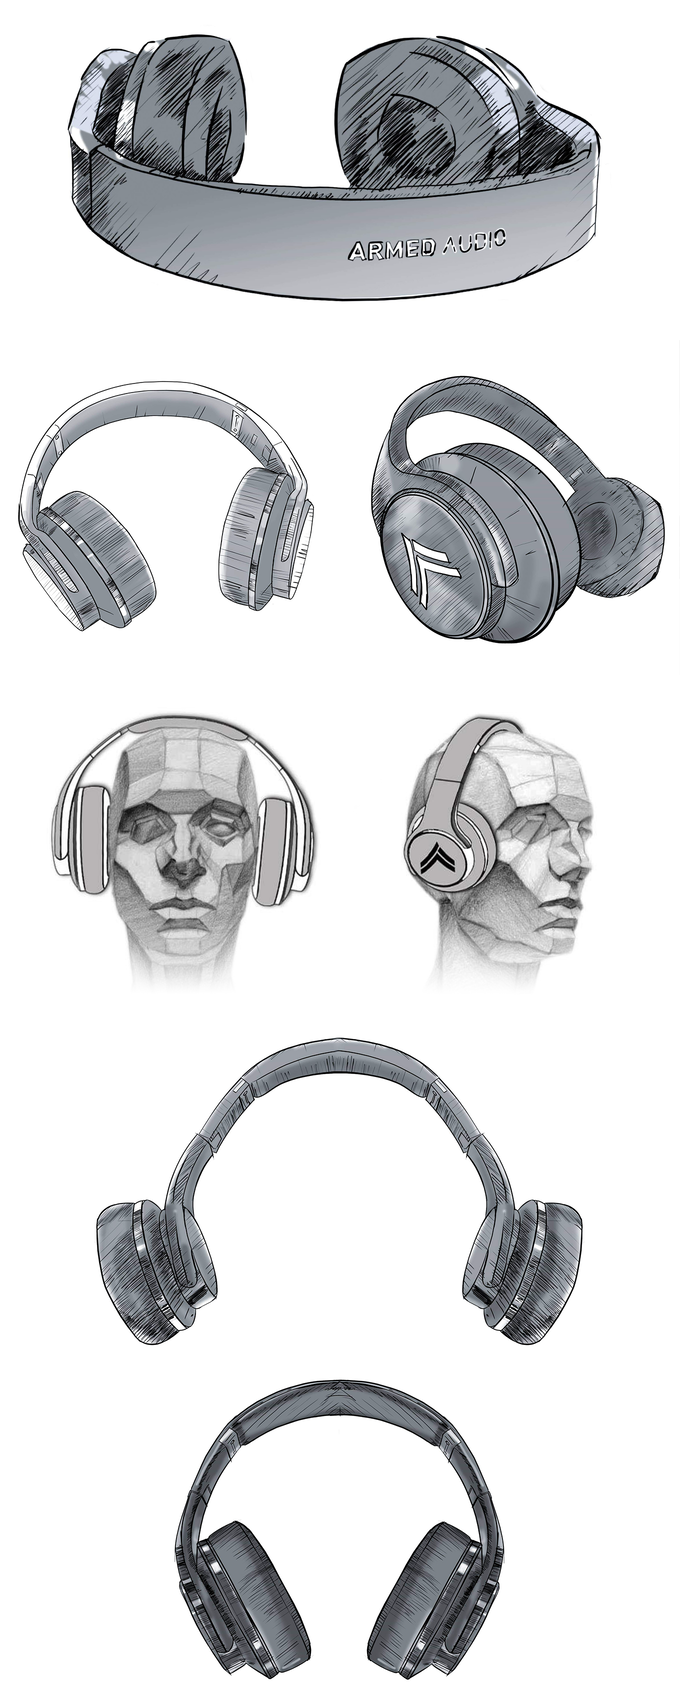 Final sketches of The ELITE-300